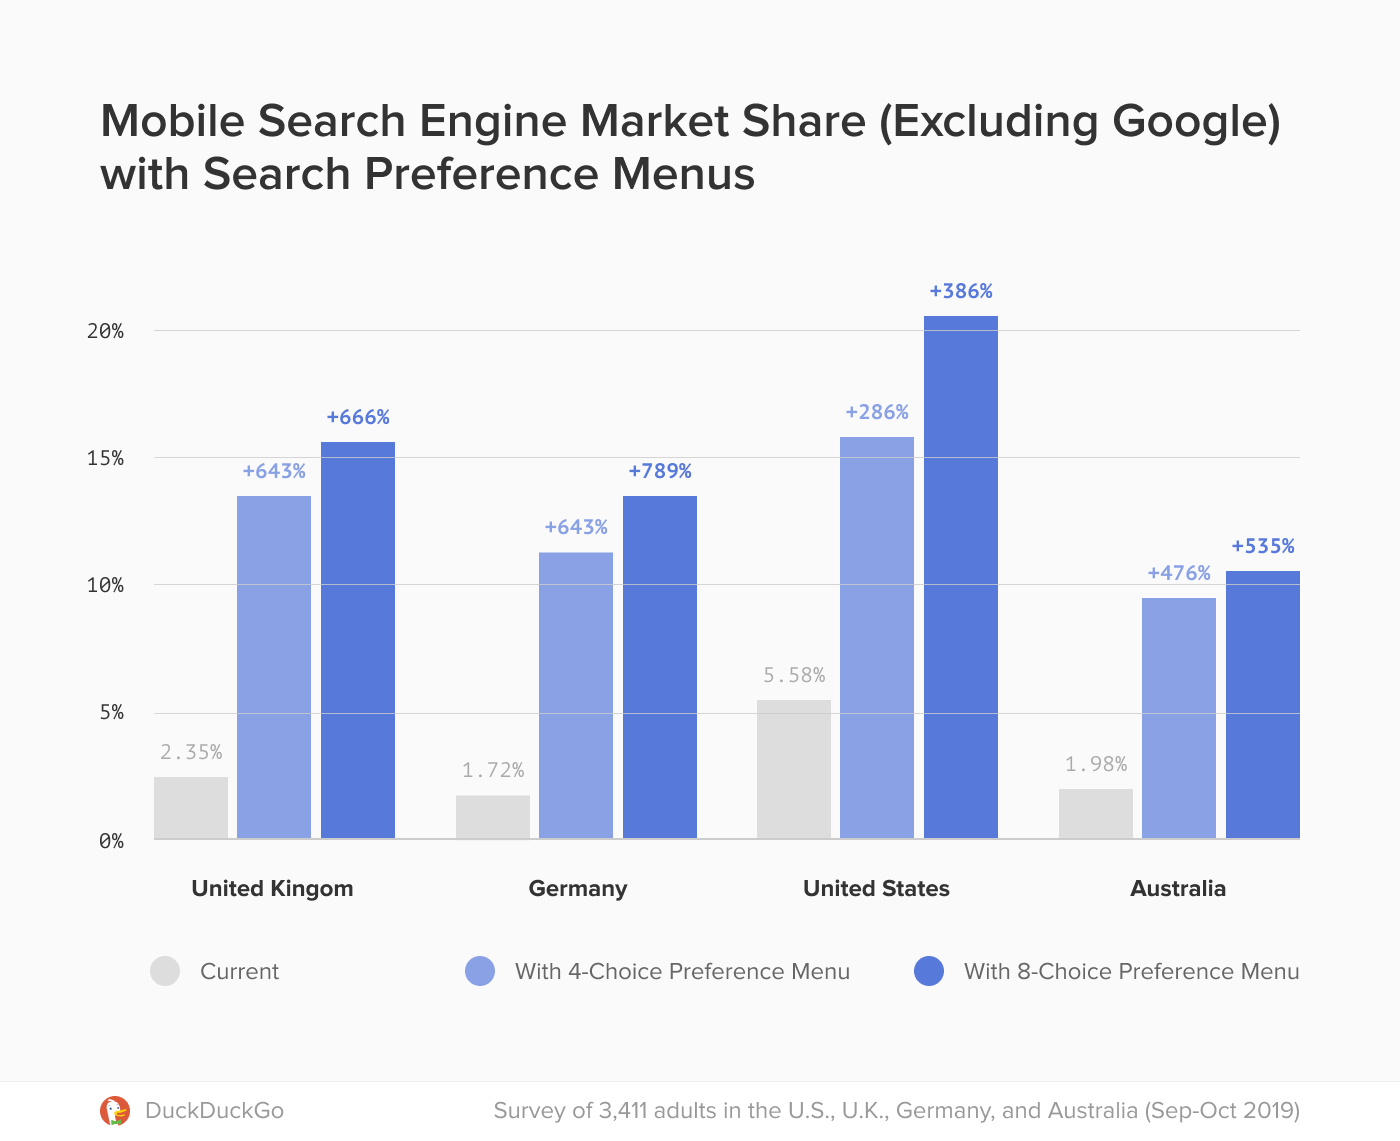 Chart showing increased search engine market share through the use of a preference menu.